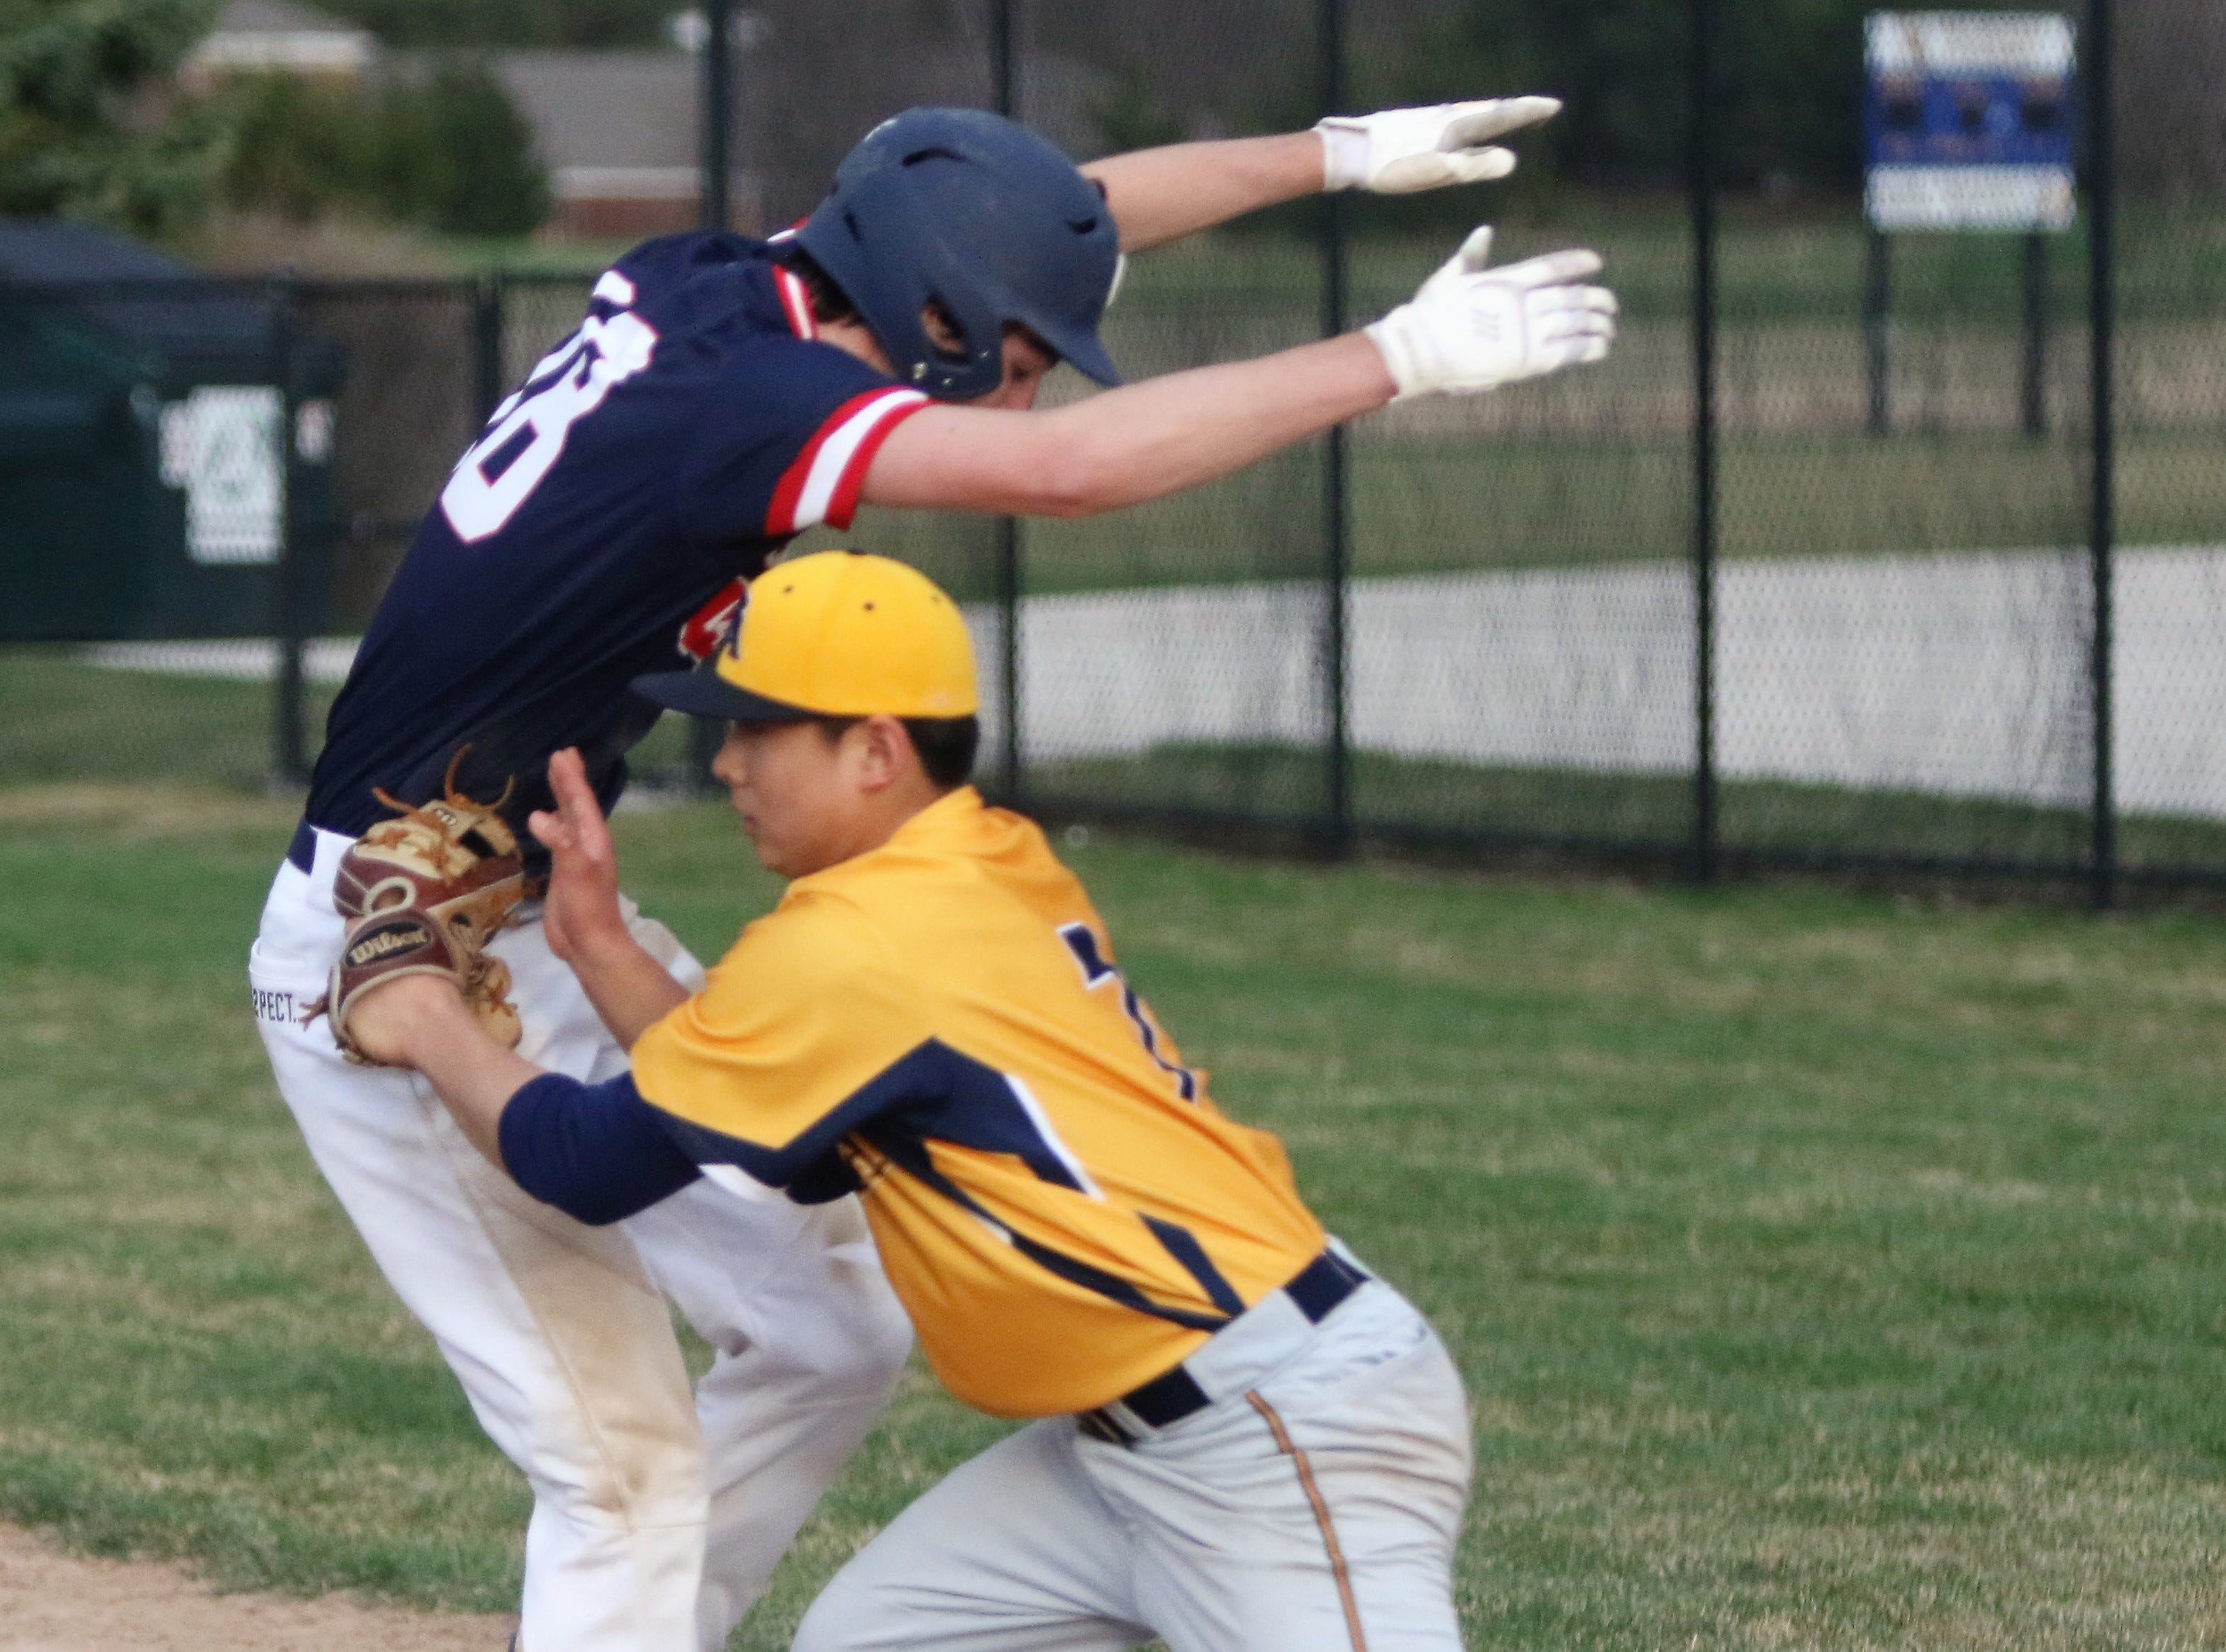 Brookfield Academy pitcher Daniel Kim tags out Brookfield East's Ethan Toone at home plate on April 22, 2019.